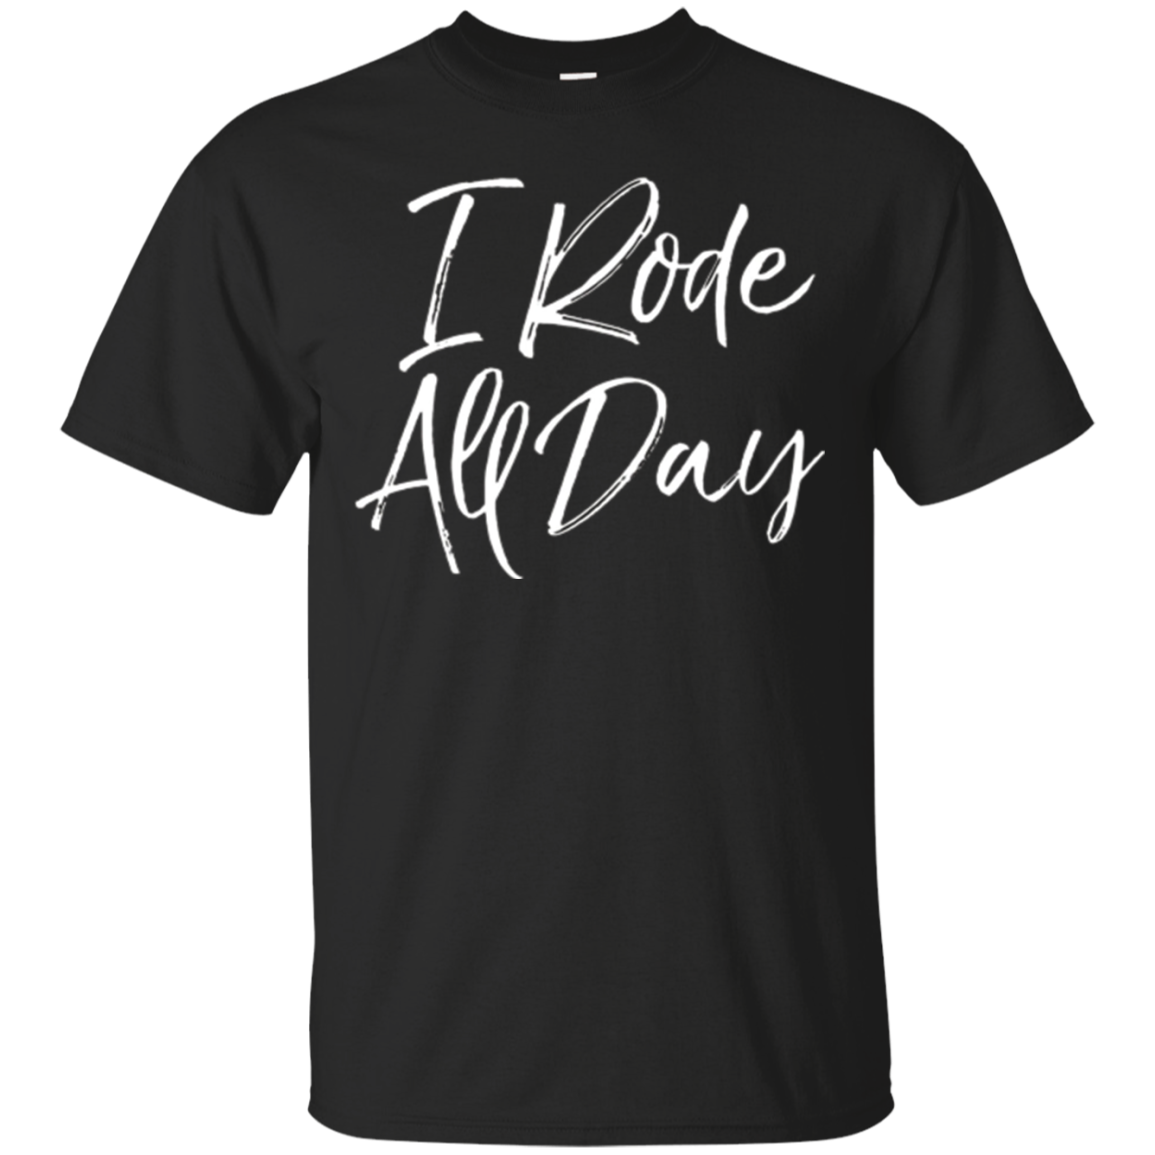 I Rode All Day Shirt Fun Cute Equestrian Horse Lover Tee